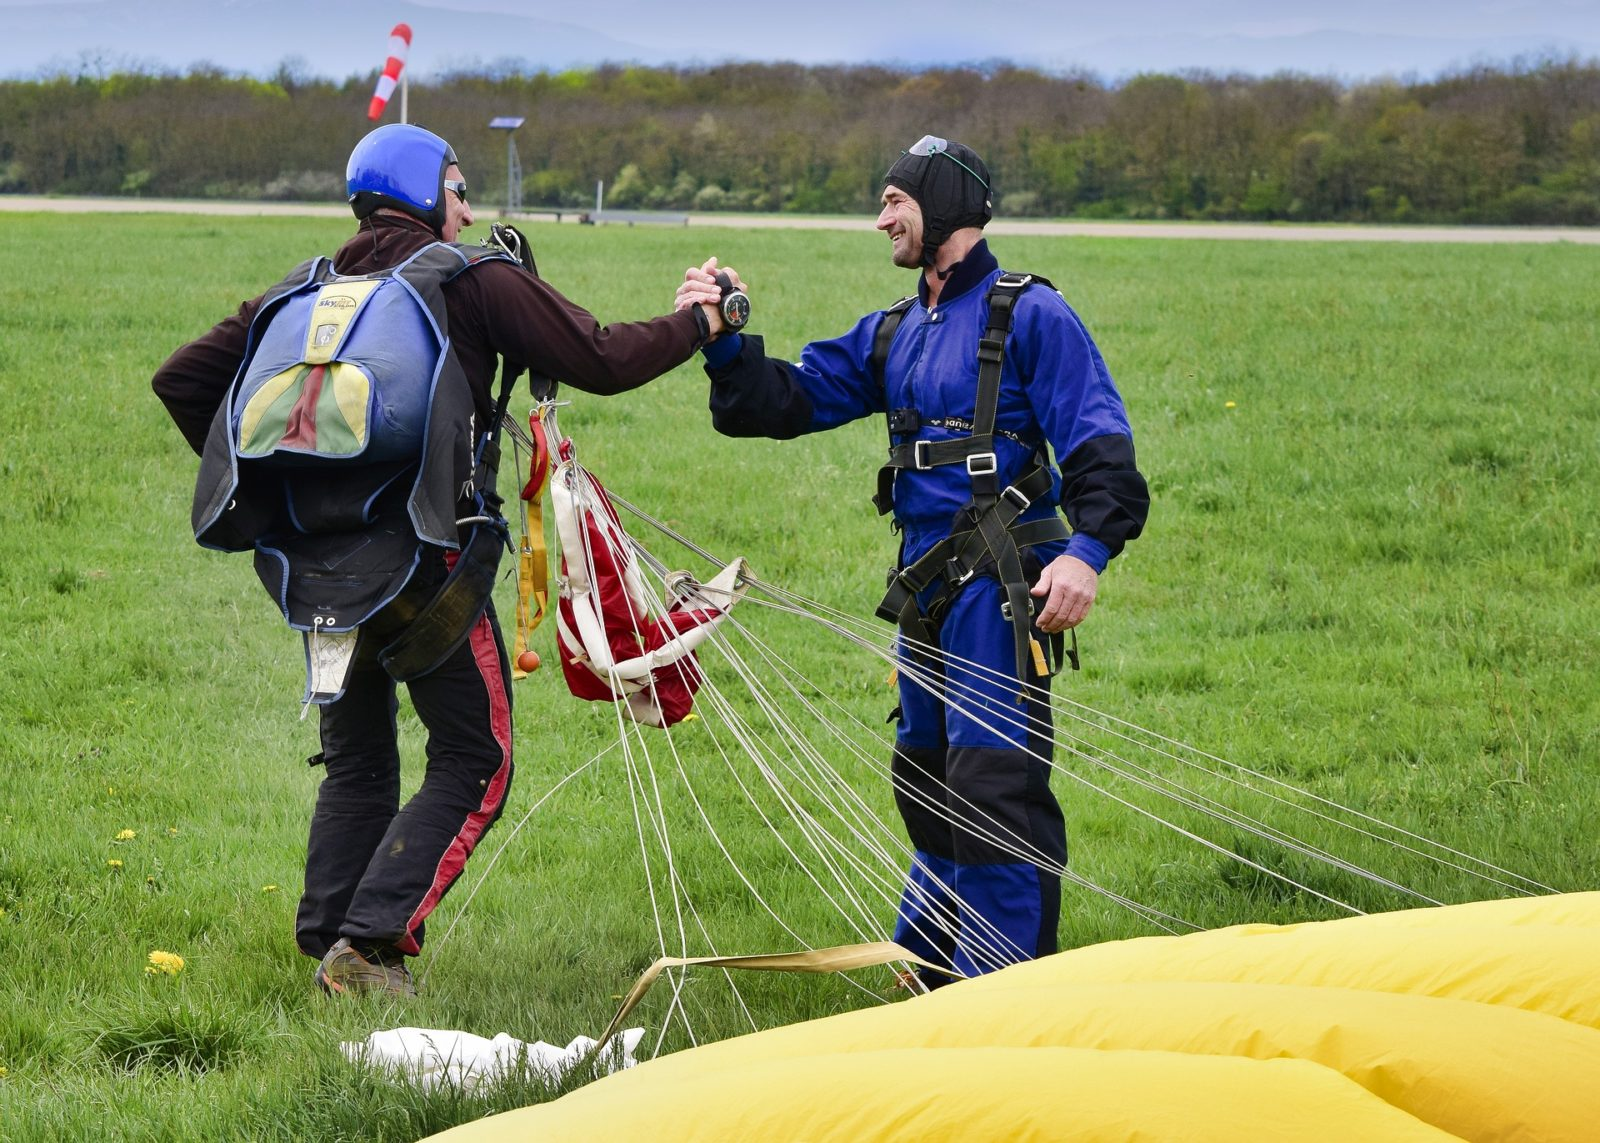 Paragliding Tips